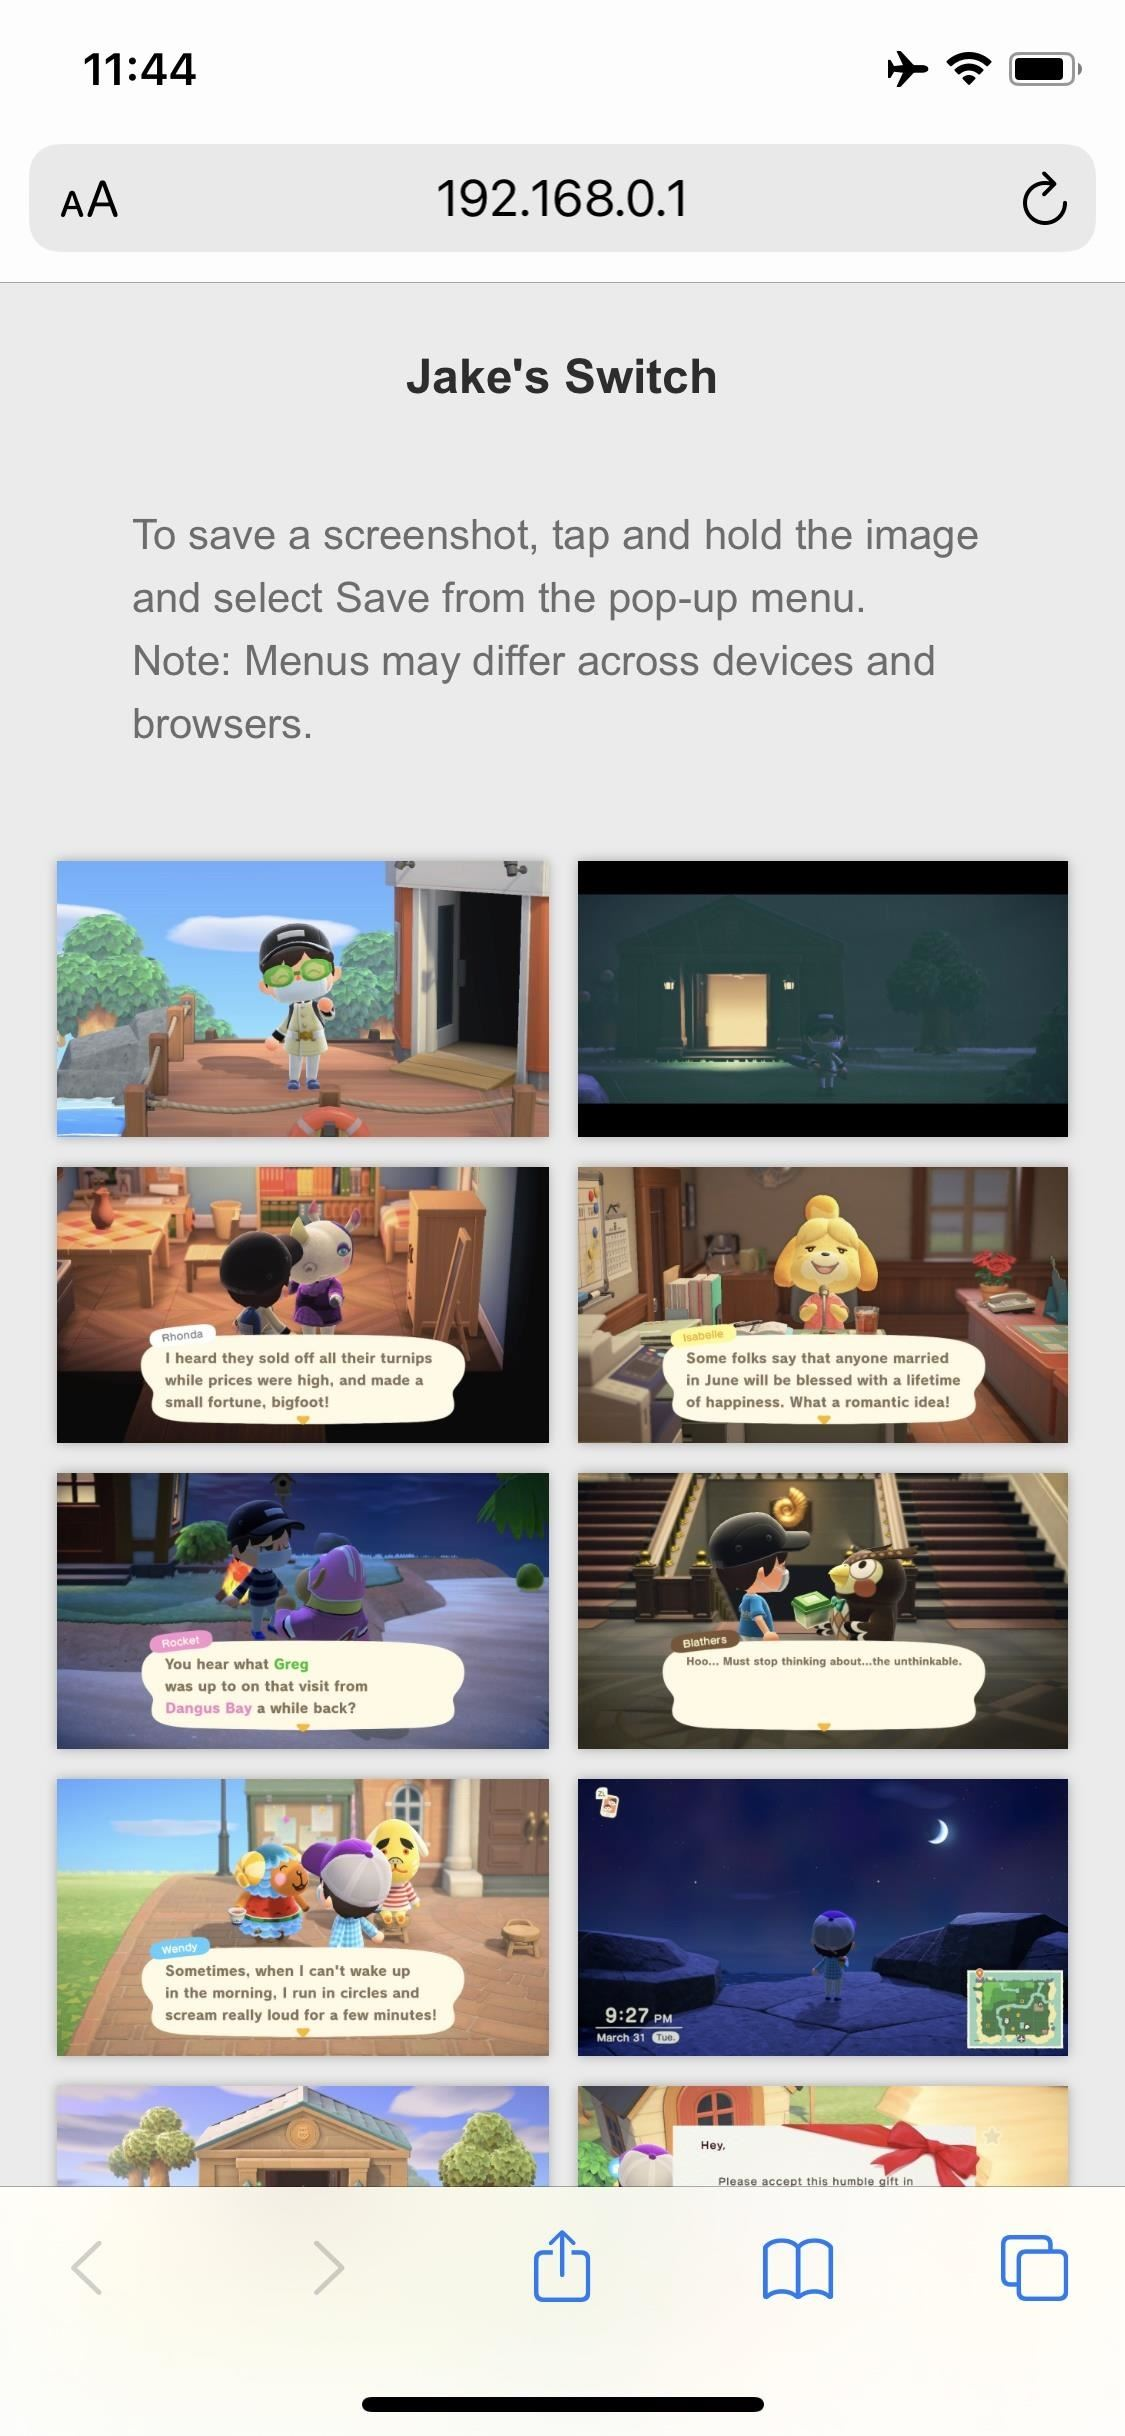 How to Get Your 'Animal Crossing - New Horizons' Photos on Your Phone